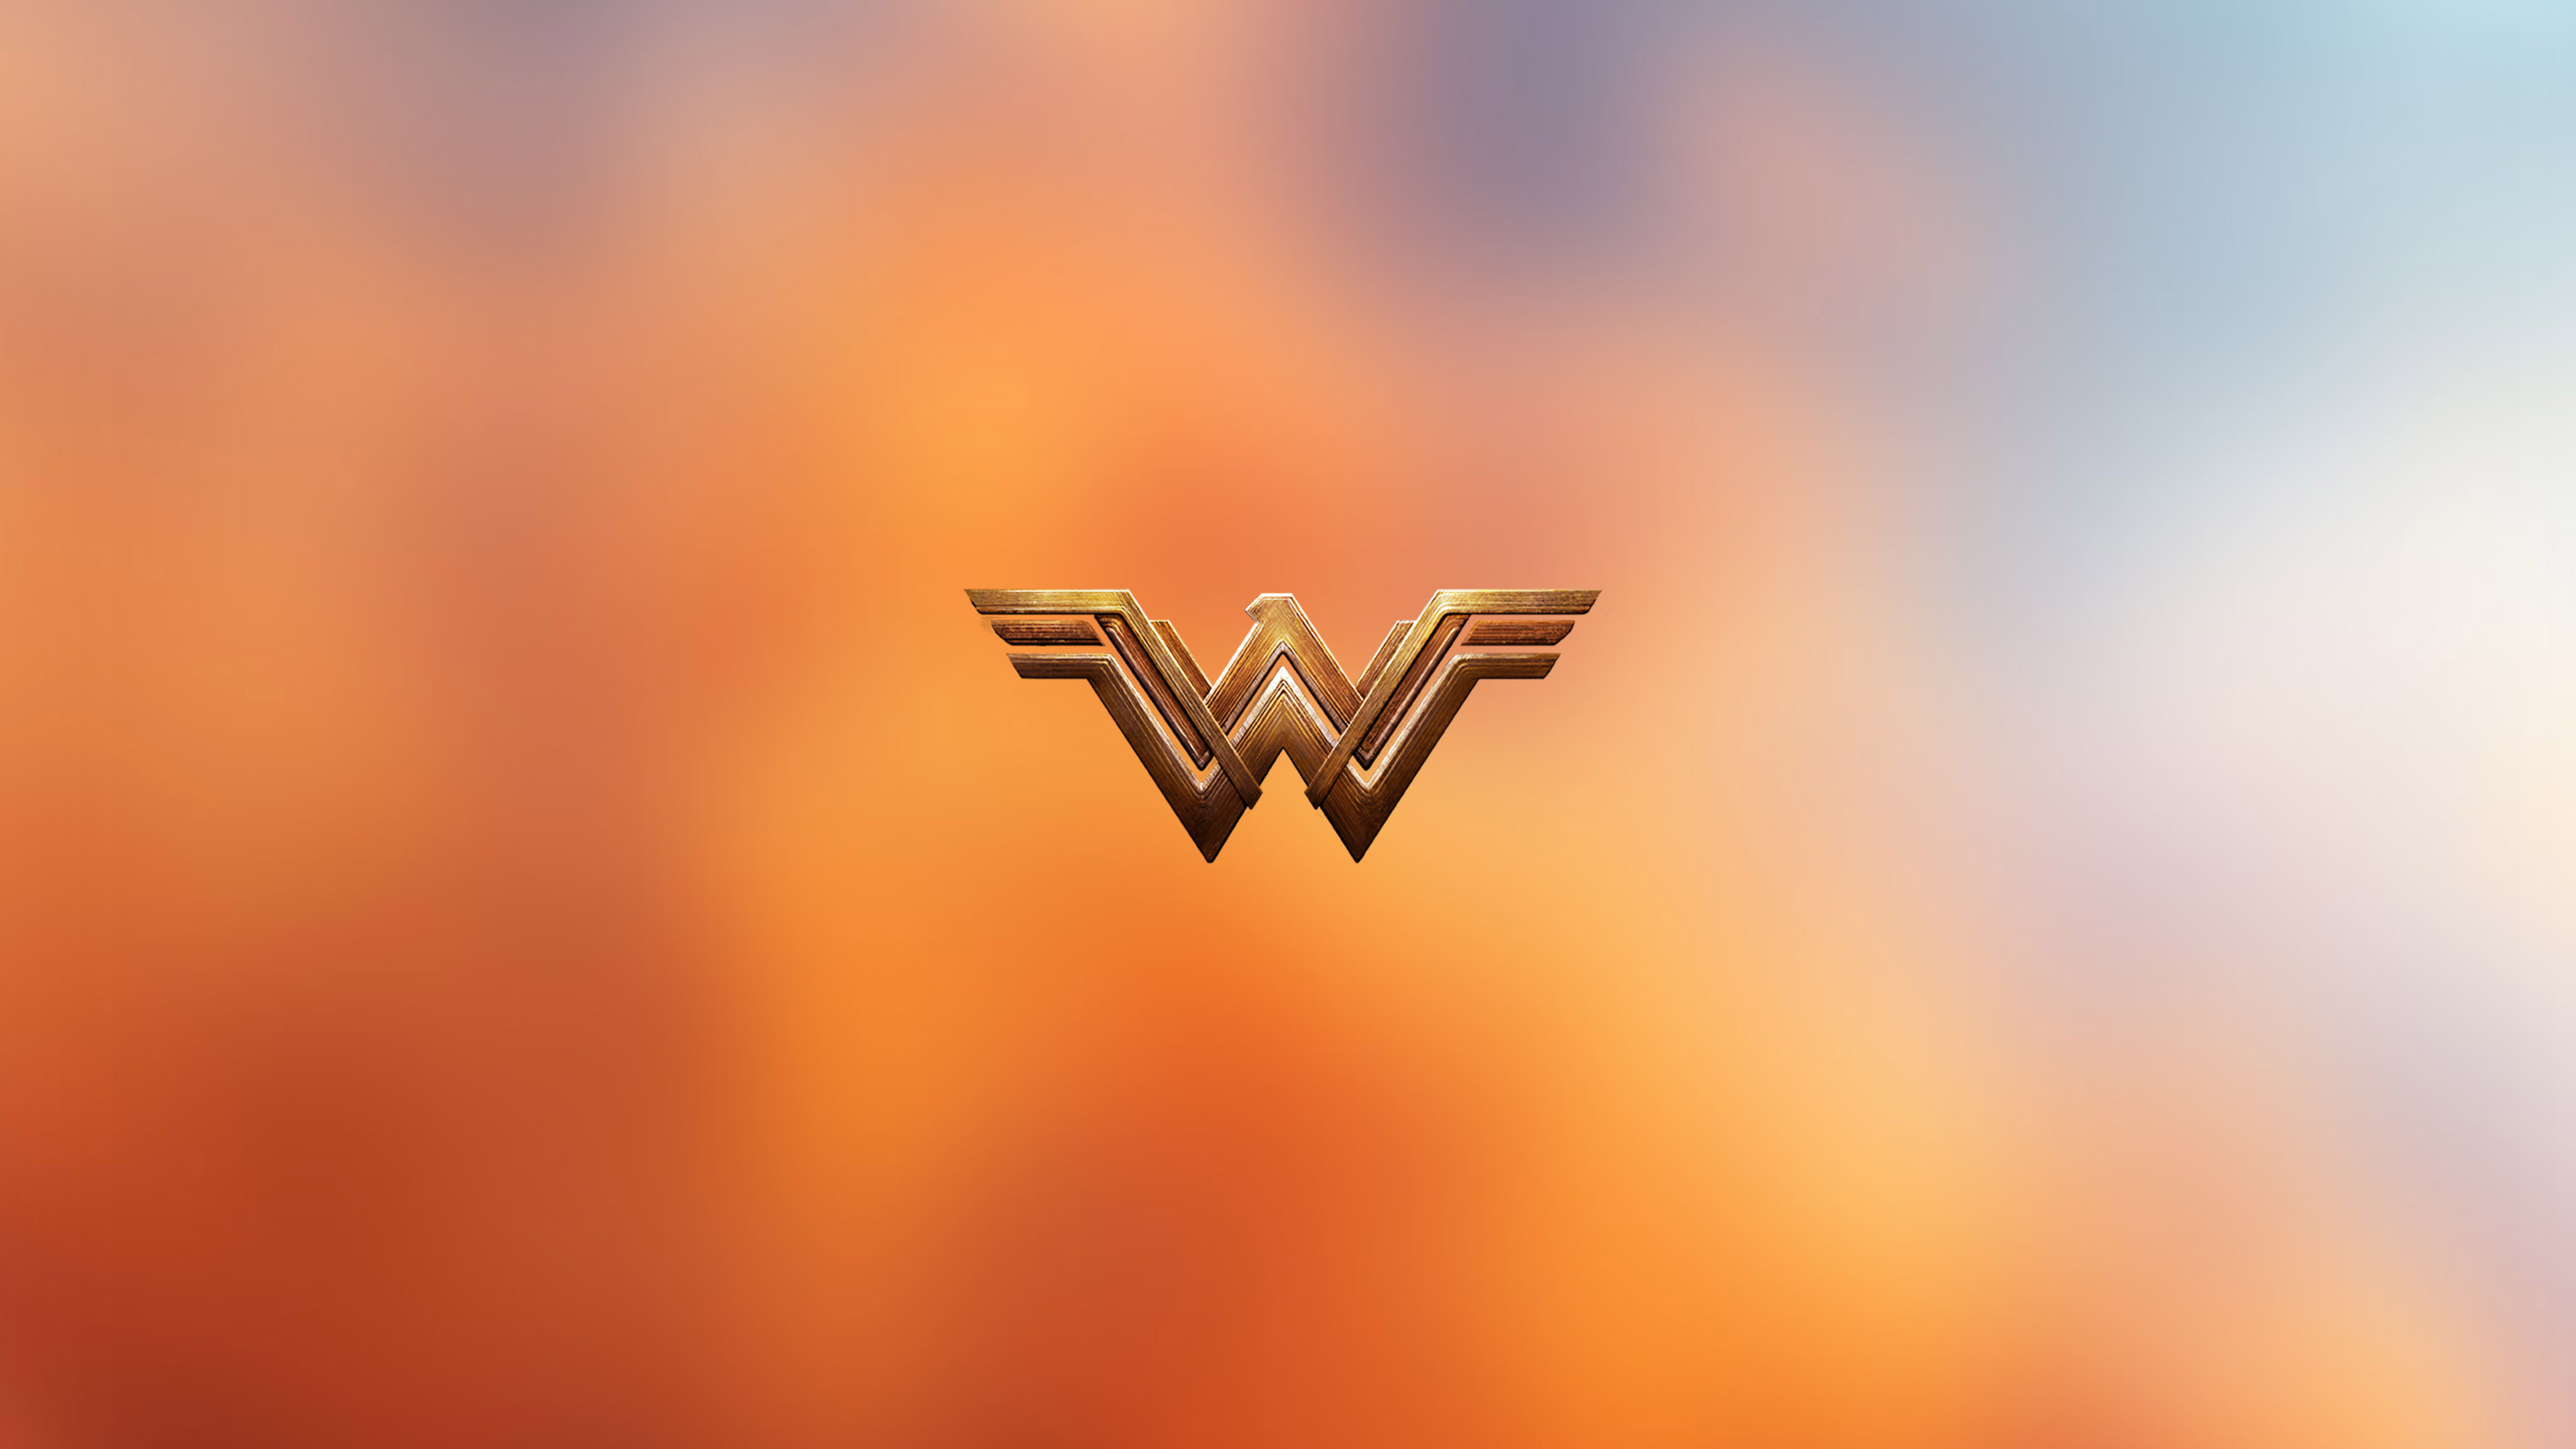 Wonder Woman Logo 4k Hd Superheroes 4k Wallpapers Images